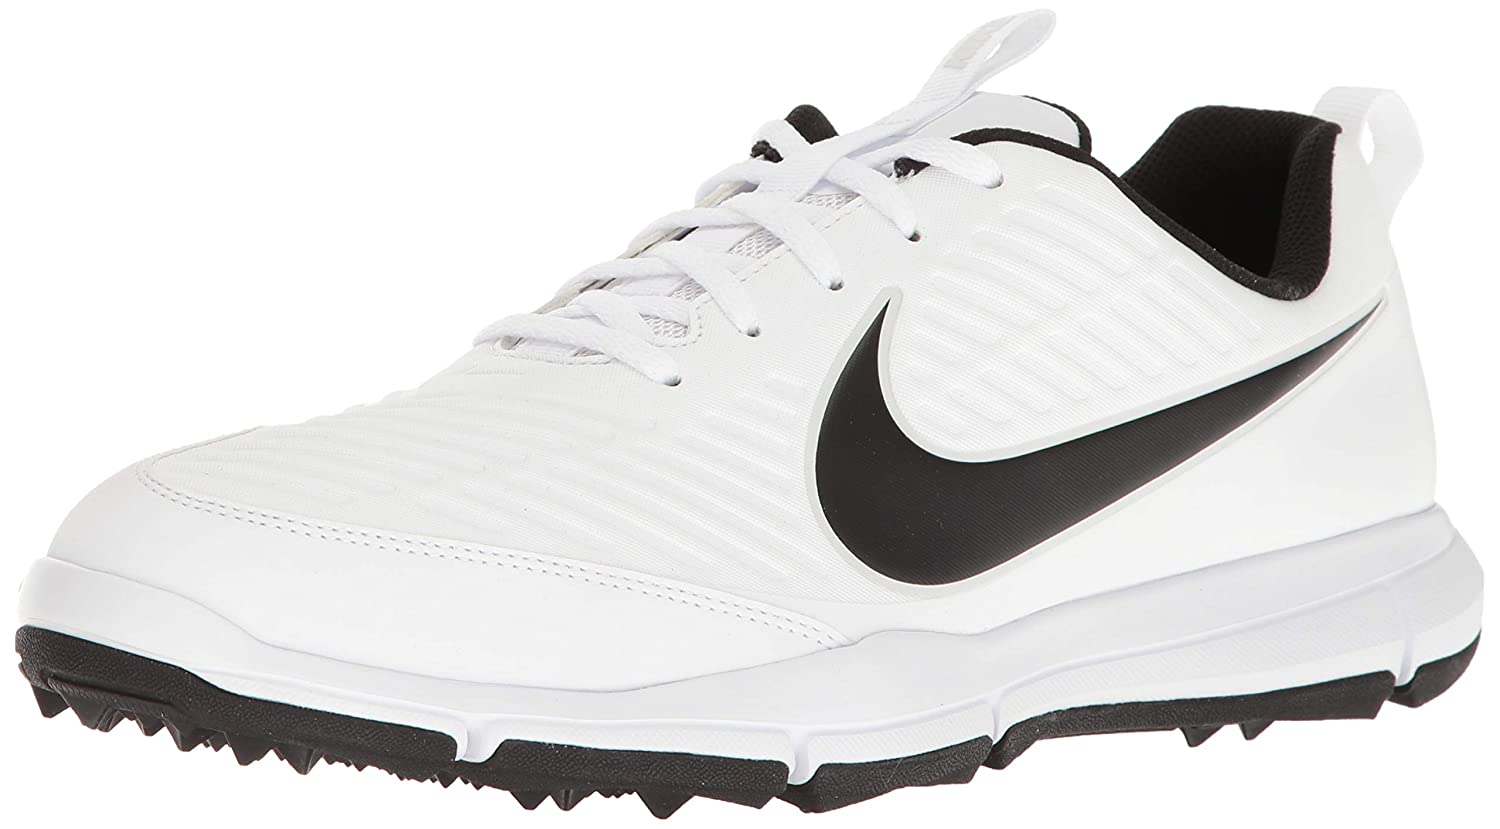 buy online 1d01c daadc Amazon.com   Nike Men s Explorer 2 Golf Shoe   Golf